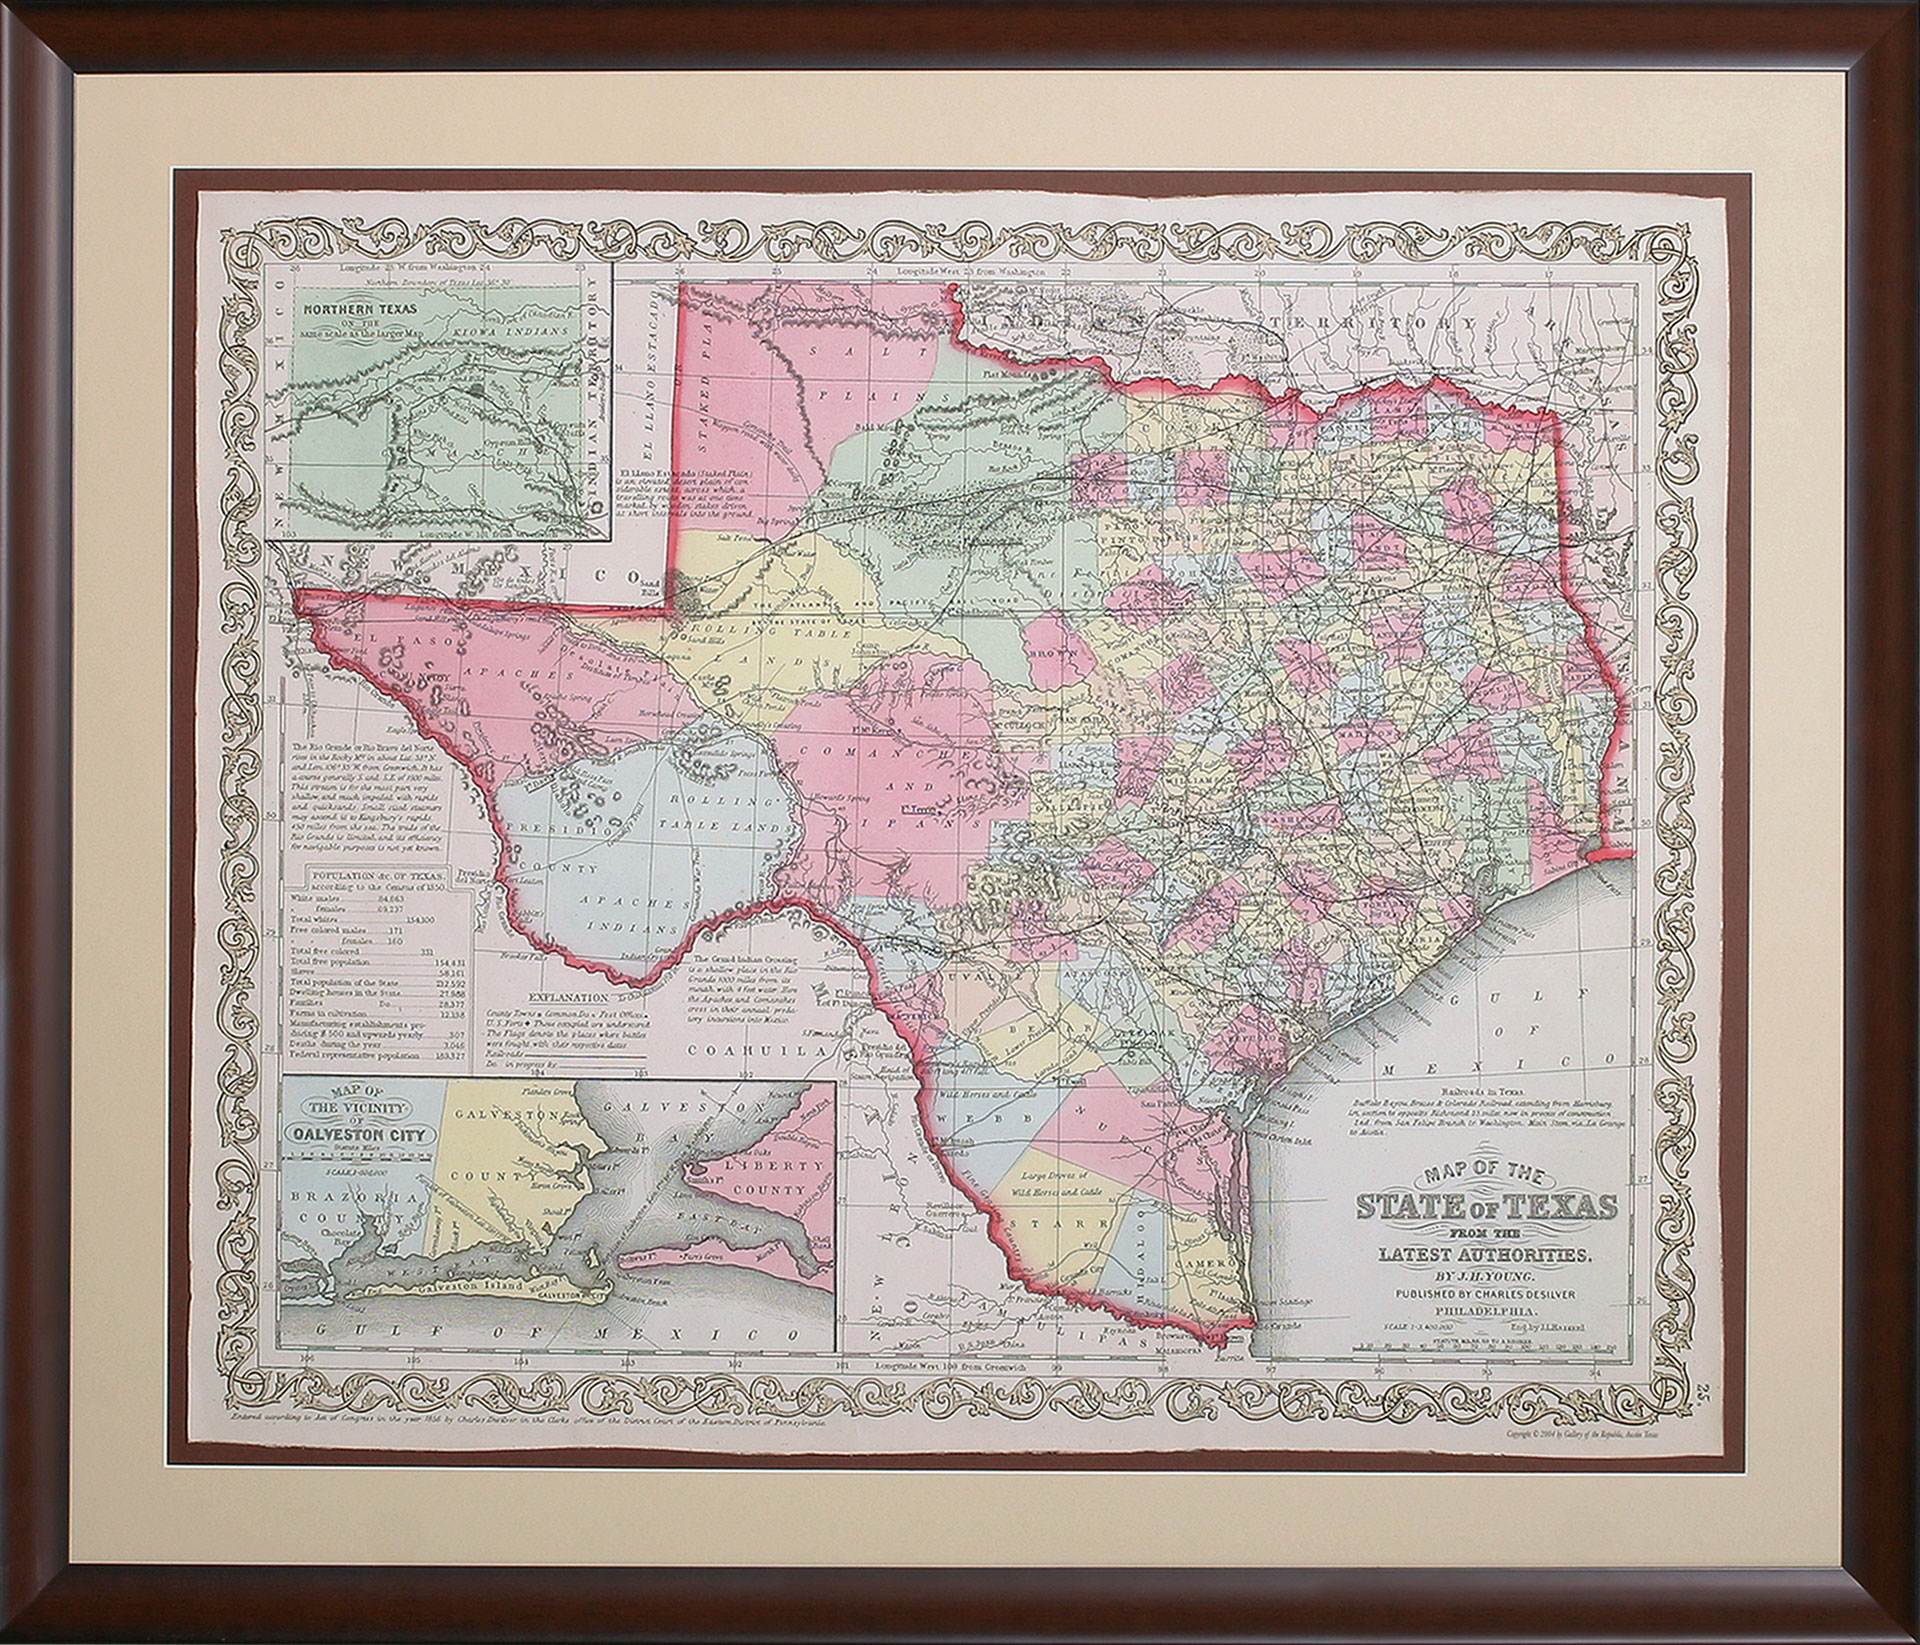 Best Early Texas Statehood Gallery Of The Republic